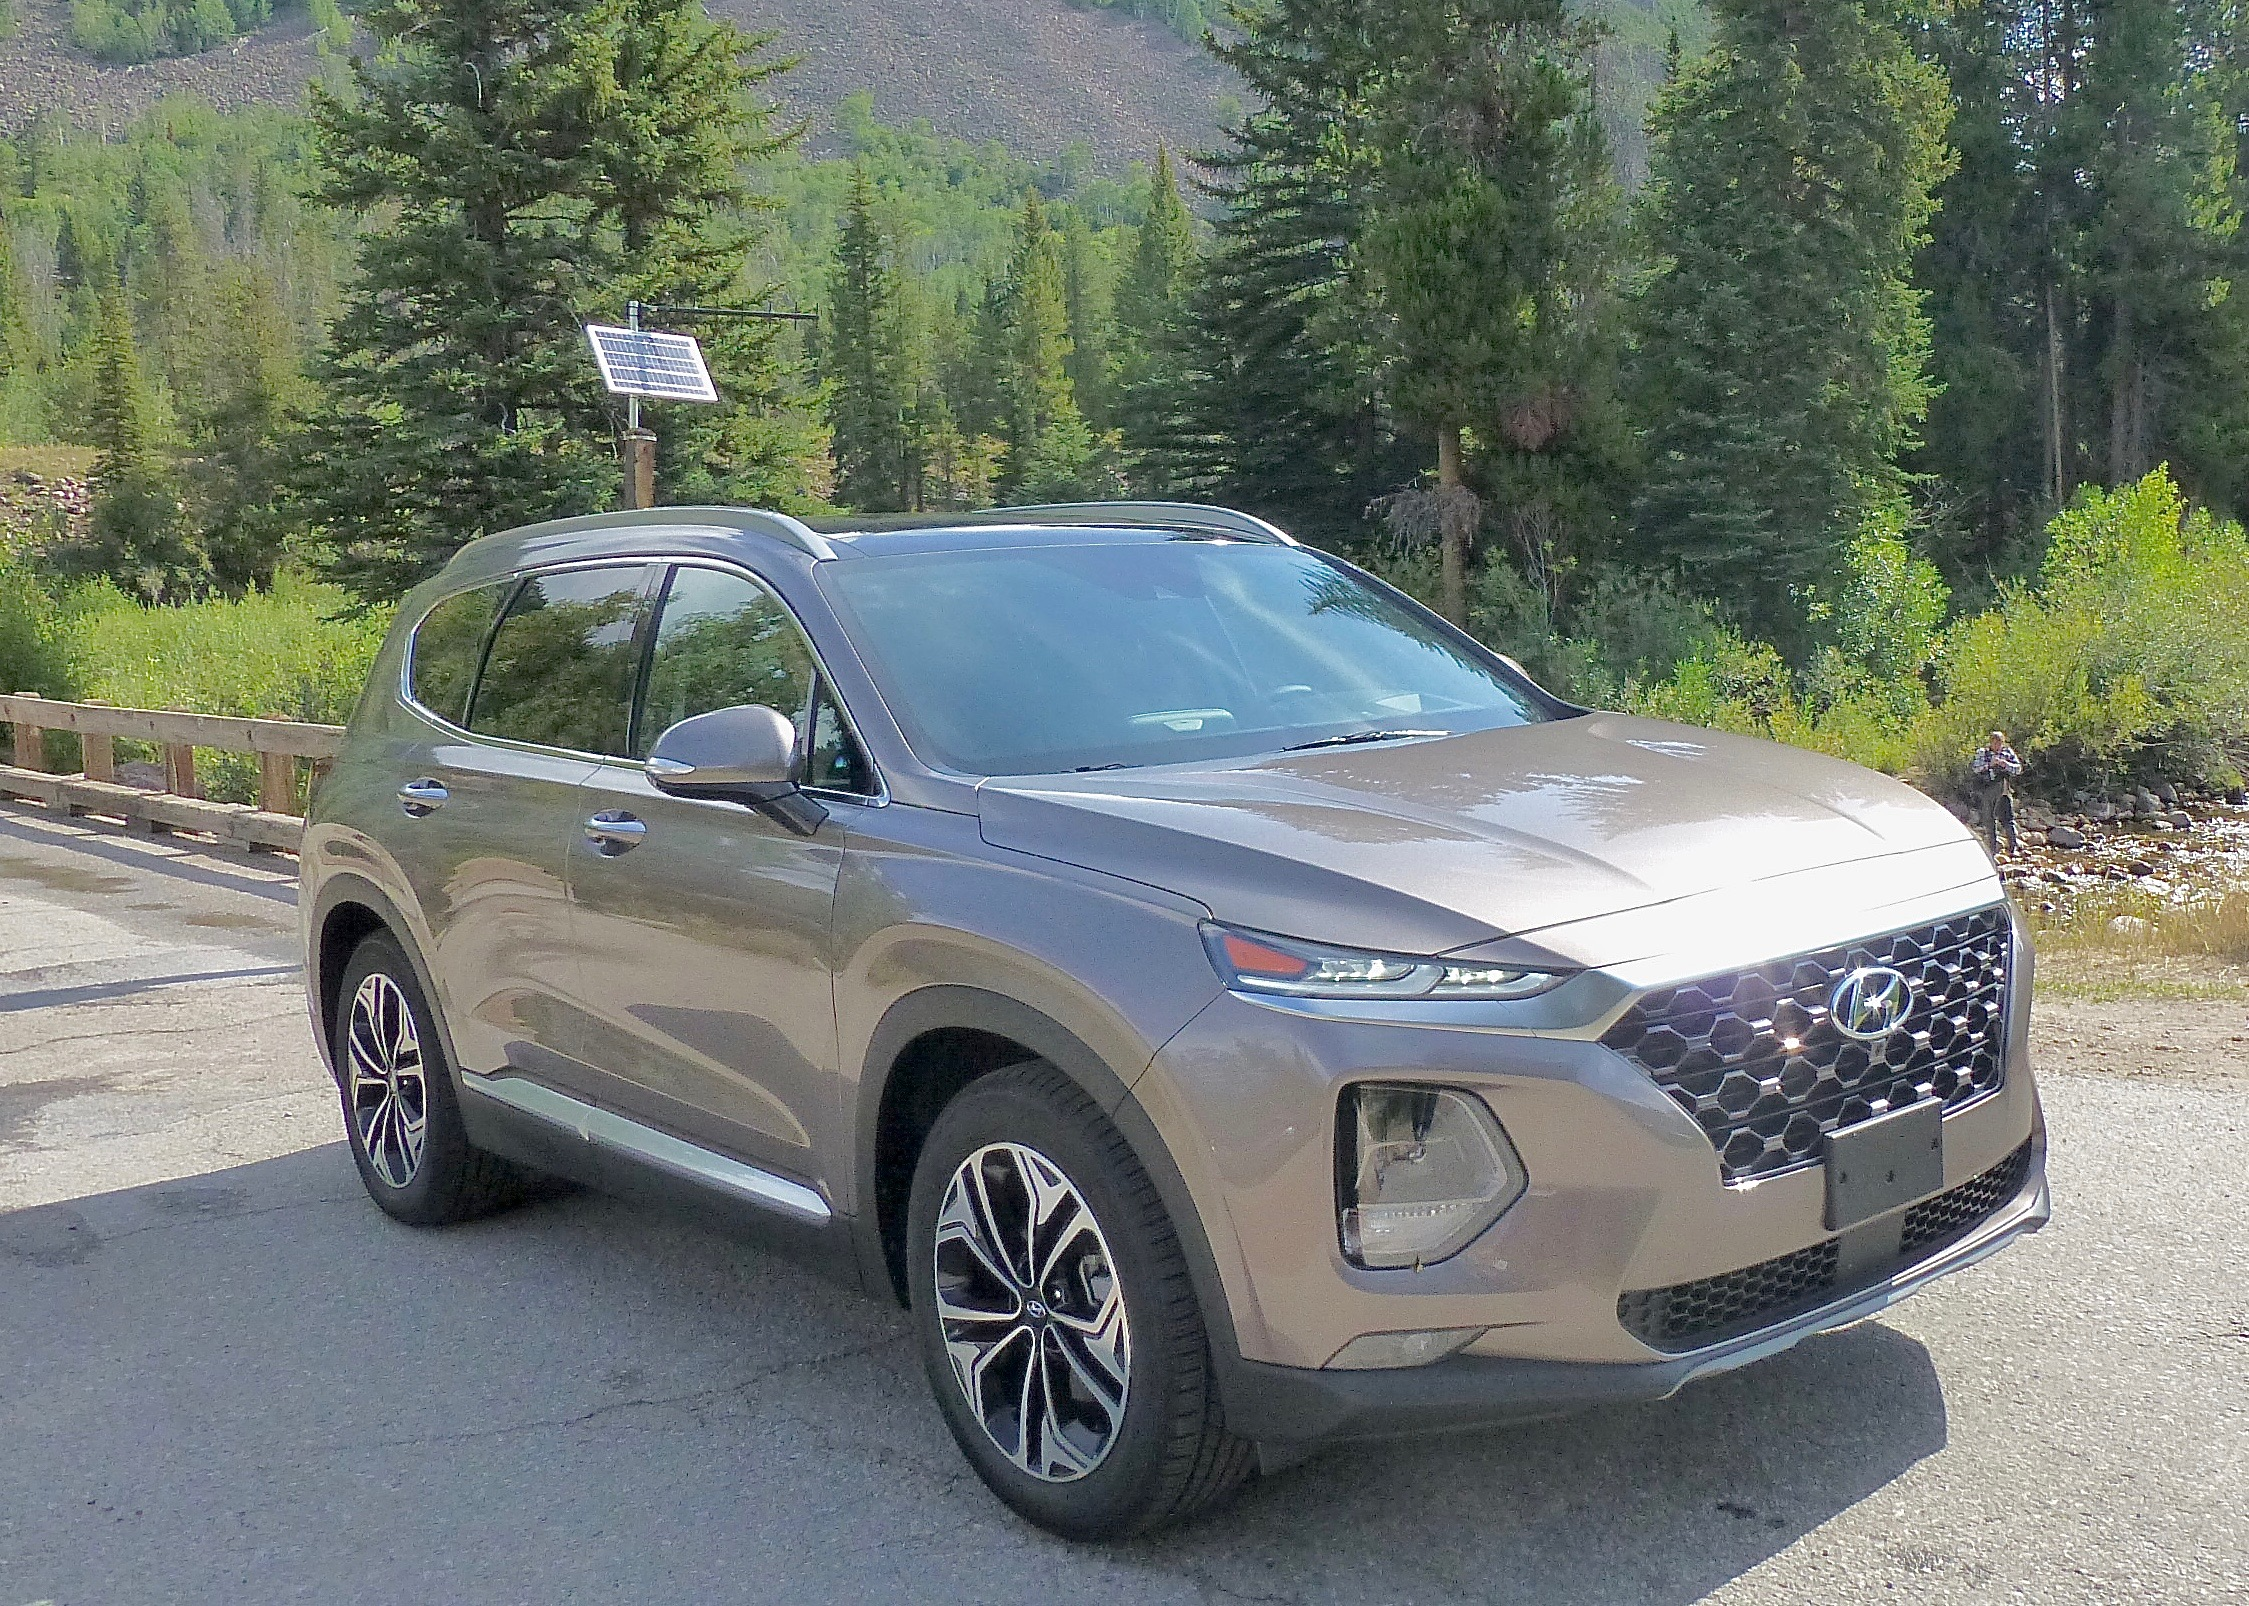 We paused in our test Santa Fe to observe a fly fisherman on a mountain stream.